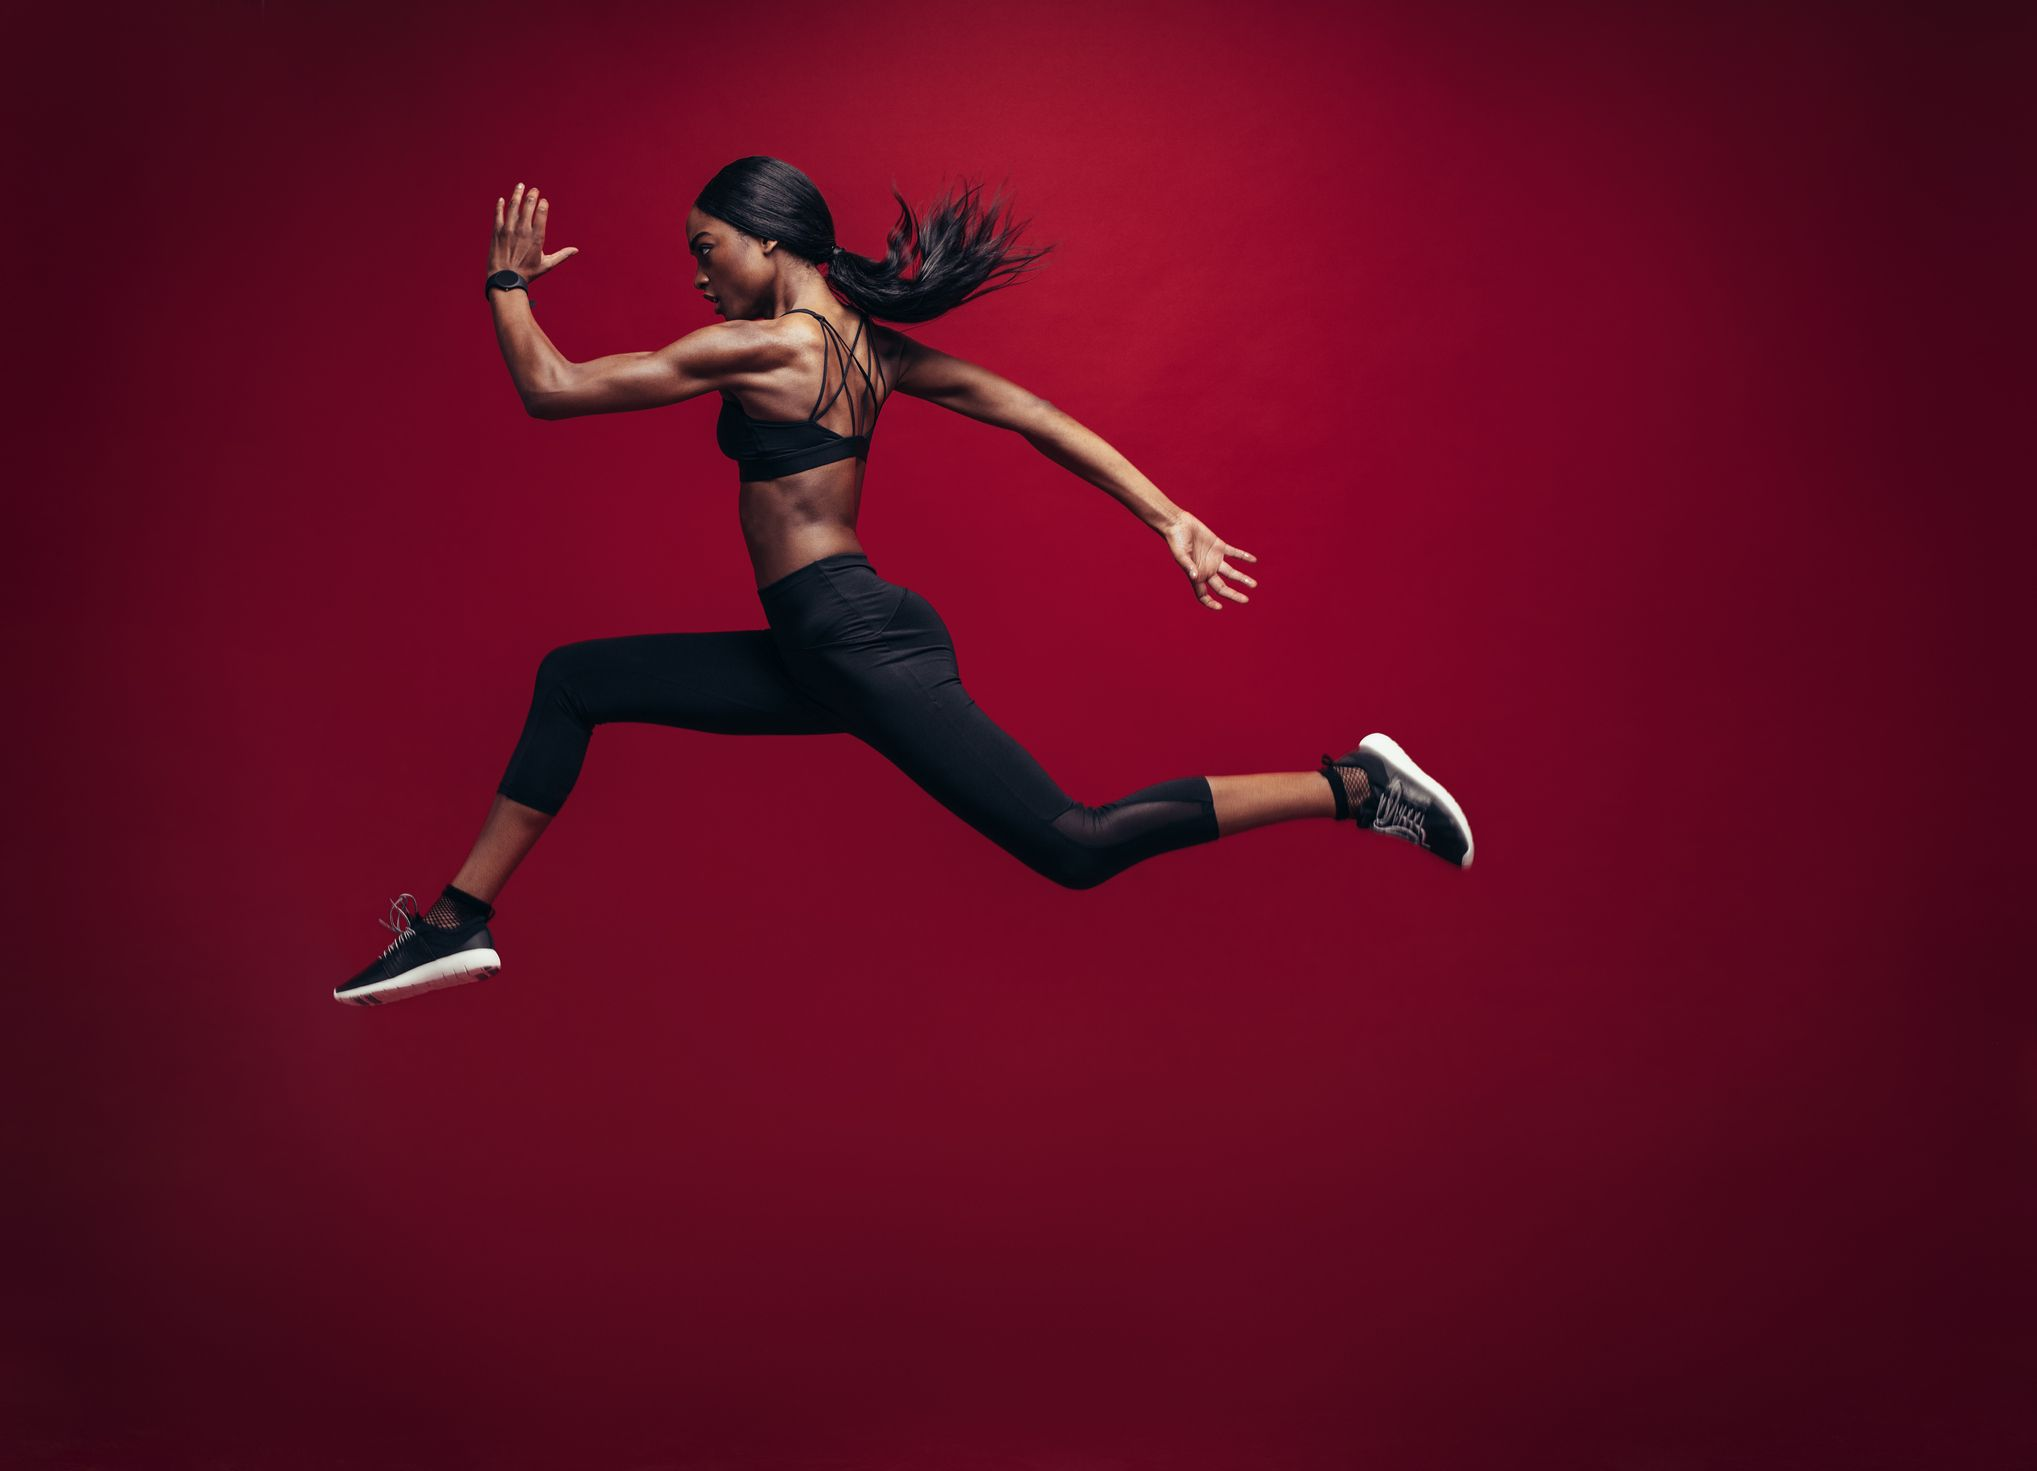 The New Tough - What It Feels Like To Push Your Body To Run For 83 Hours